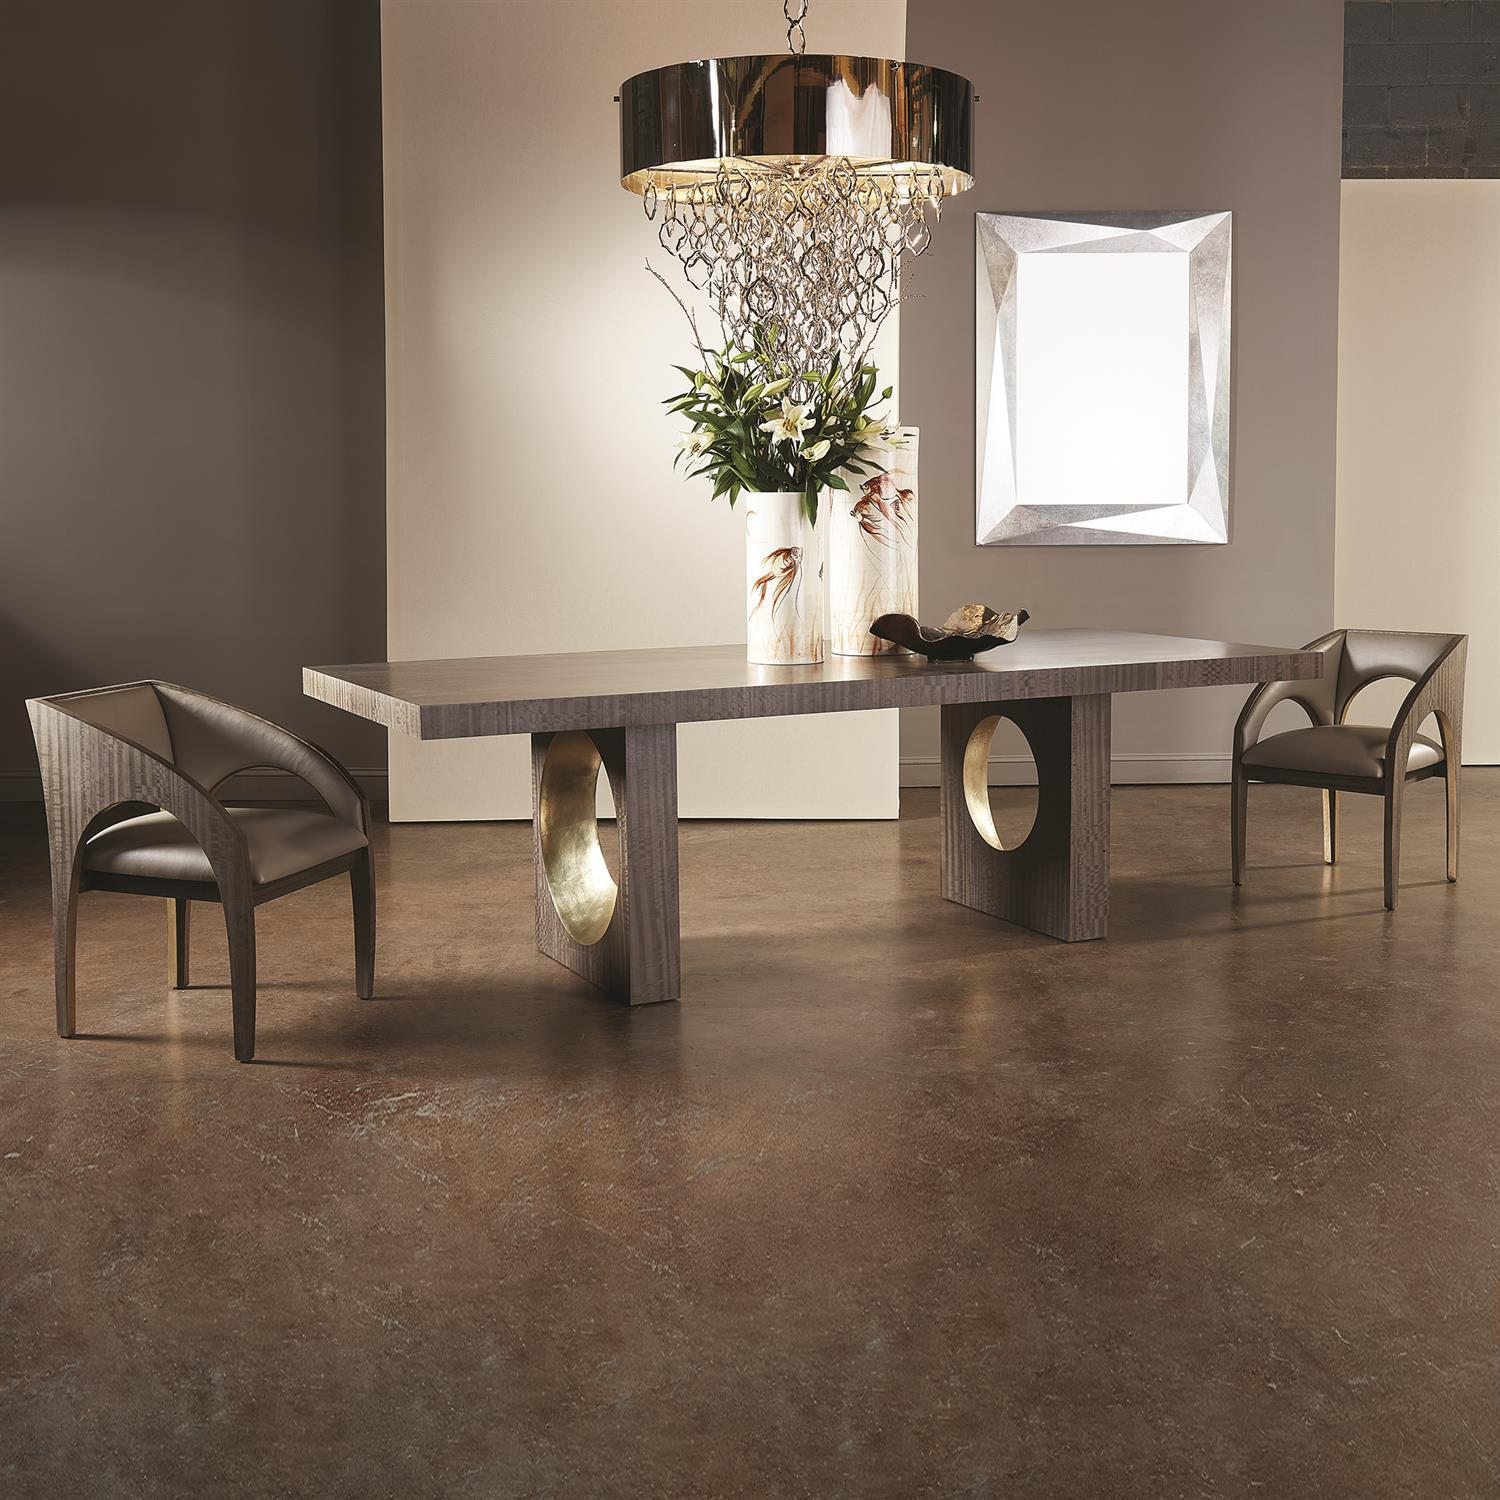 Global Views Oculus Dining Table